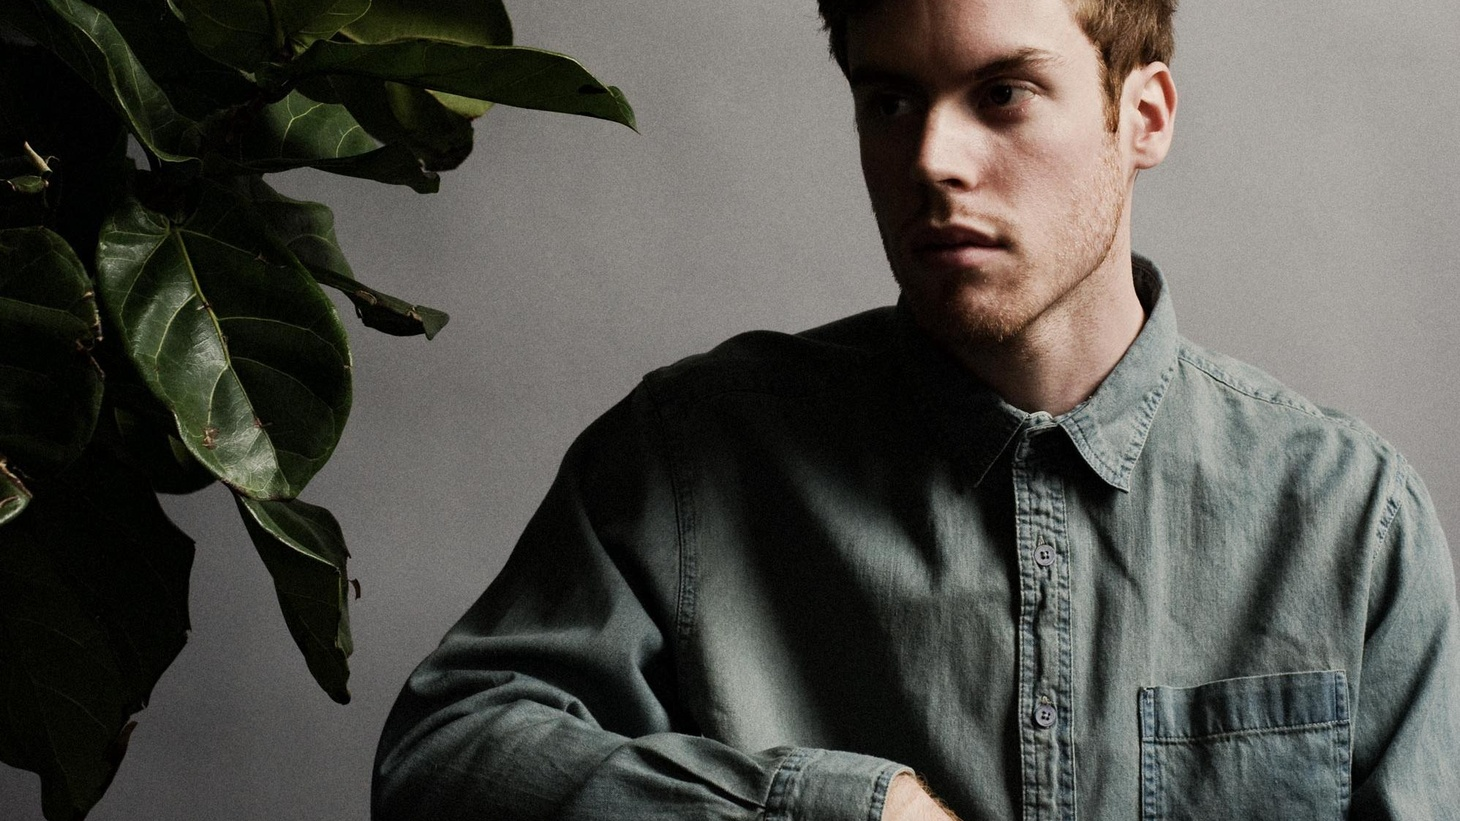 Jack Tatum, aka Wild Nothing, saunters through a shoegazey and dance-floor ready mix on his latest EP.